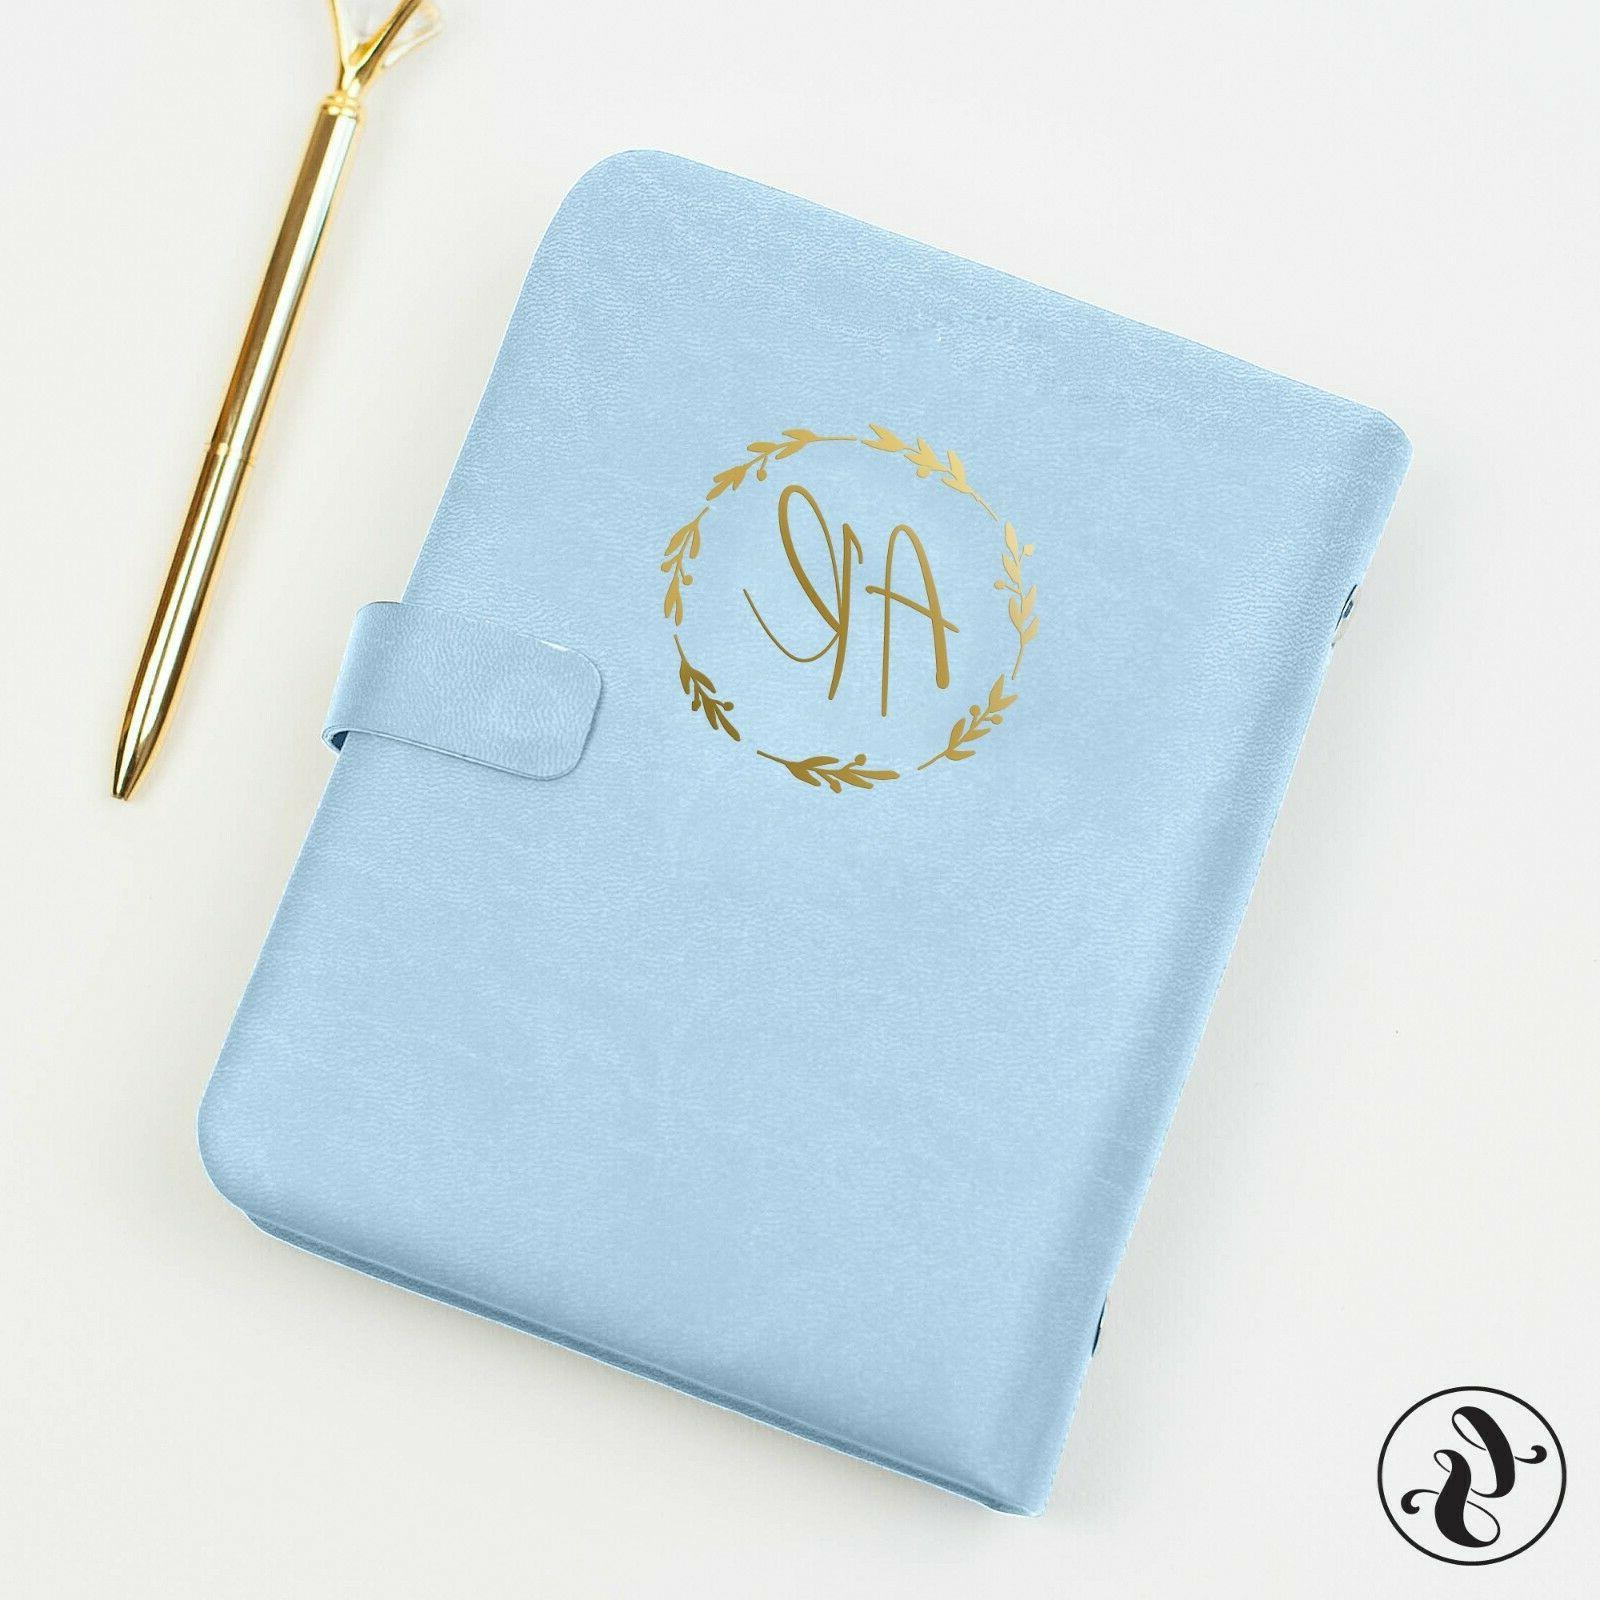 leather journal with initials monogram planner undated